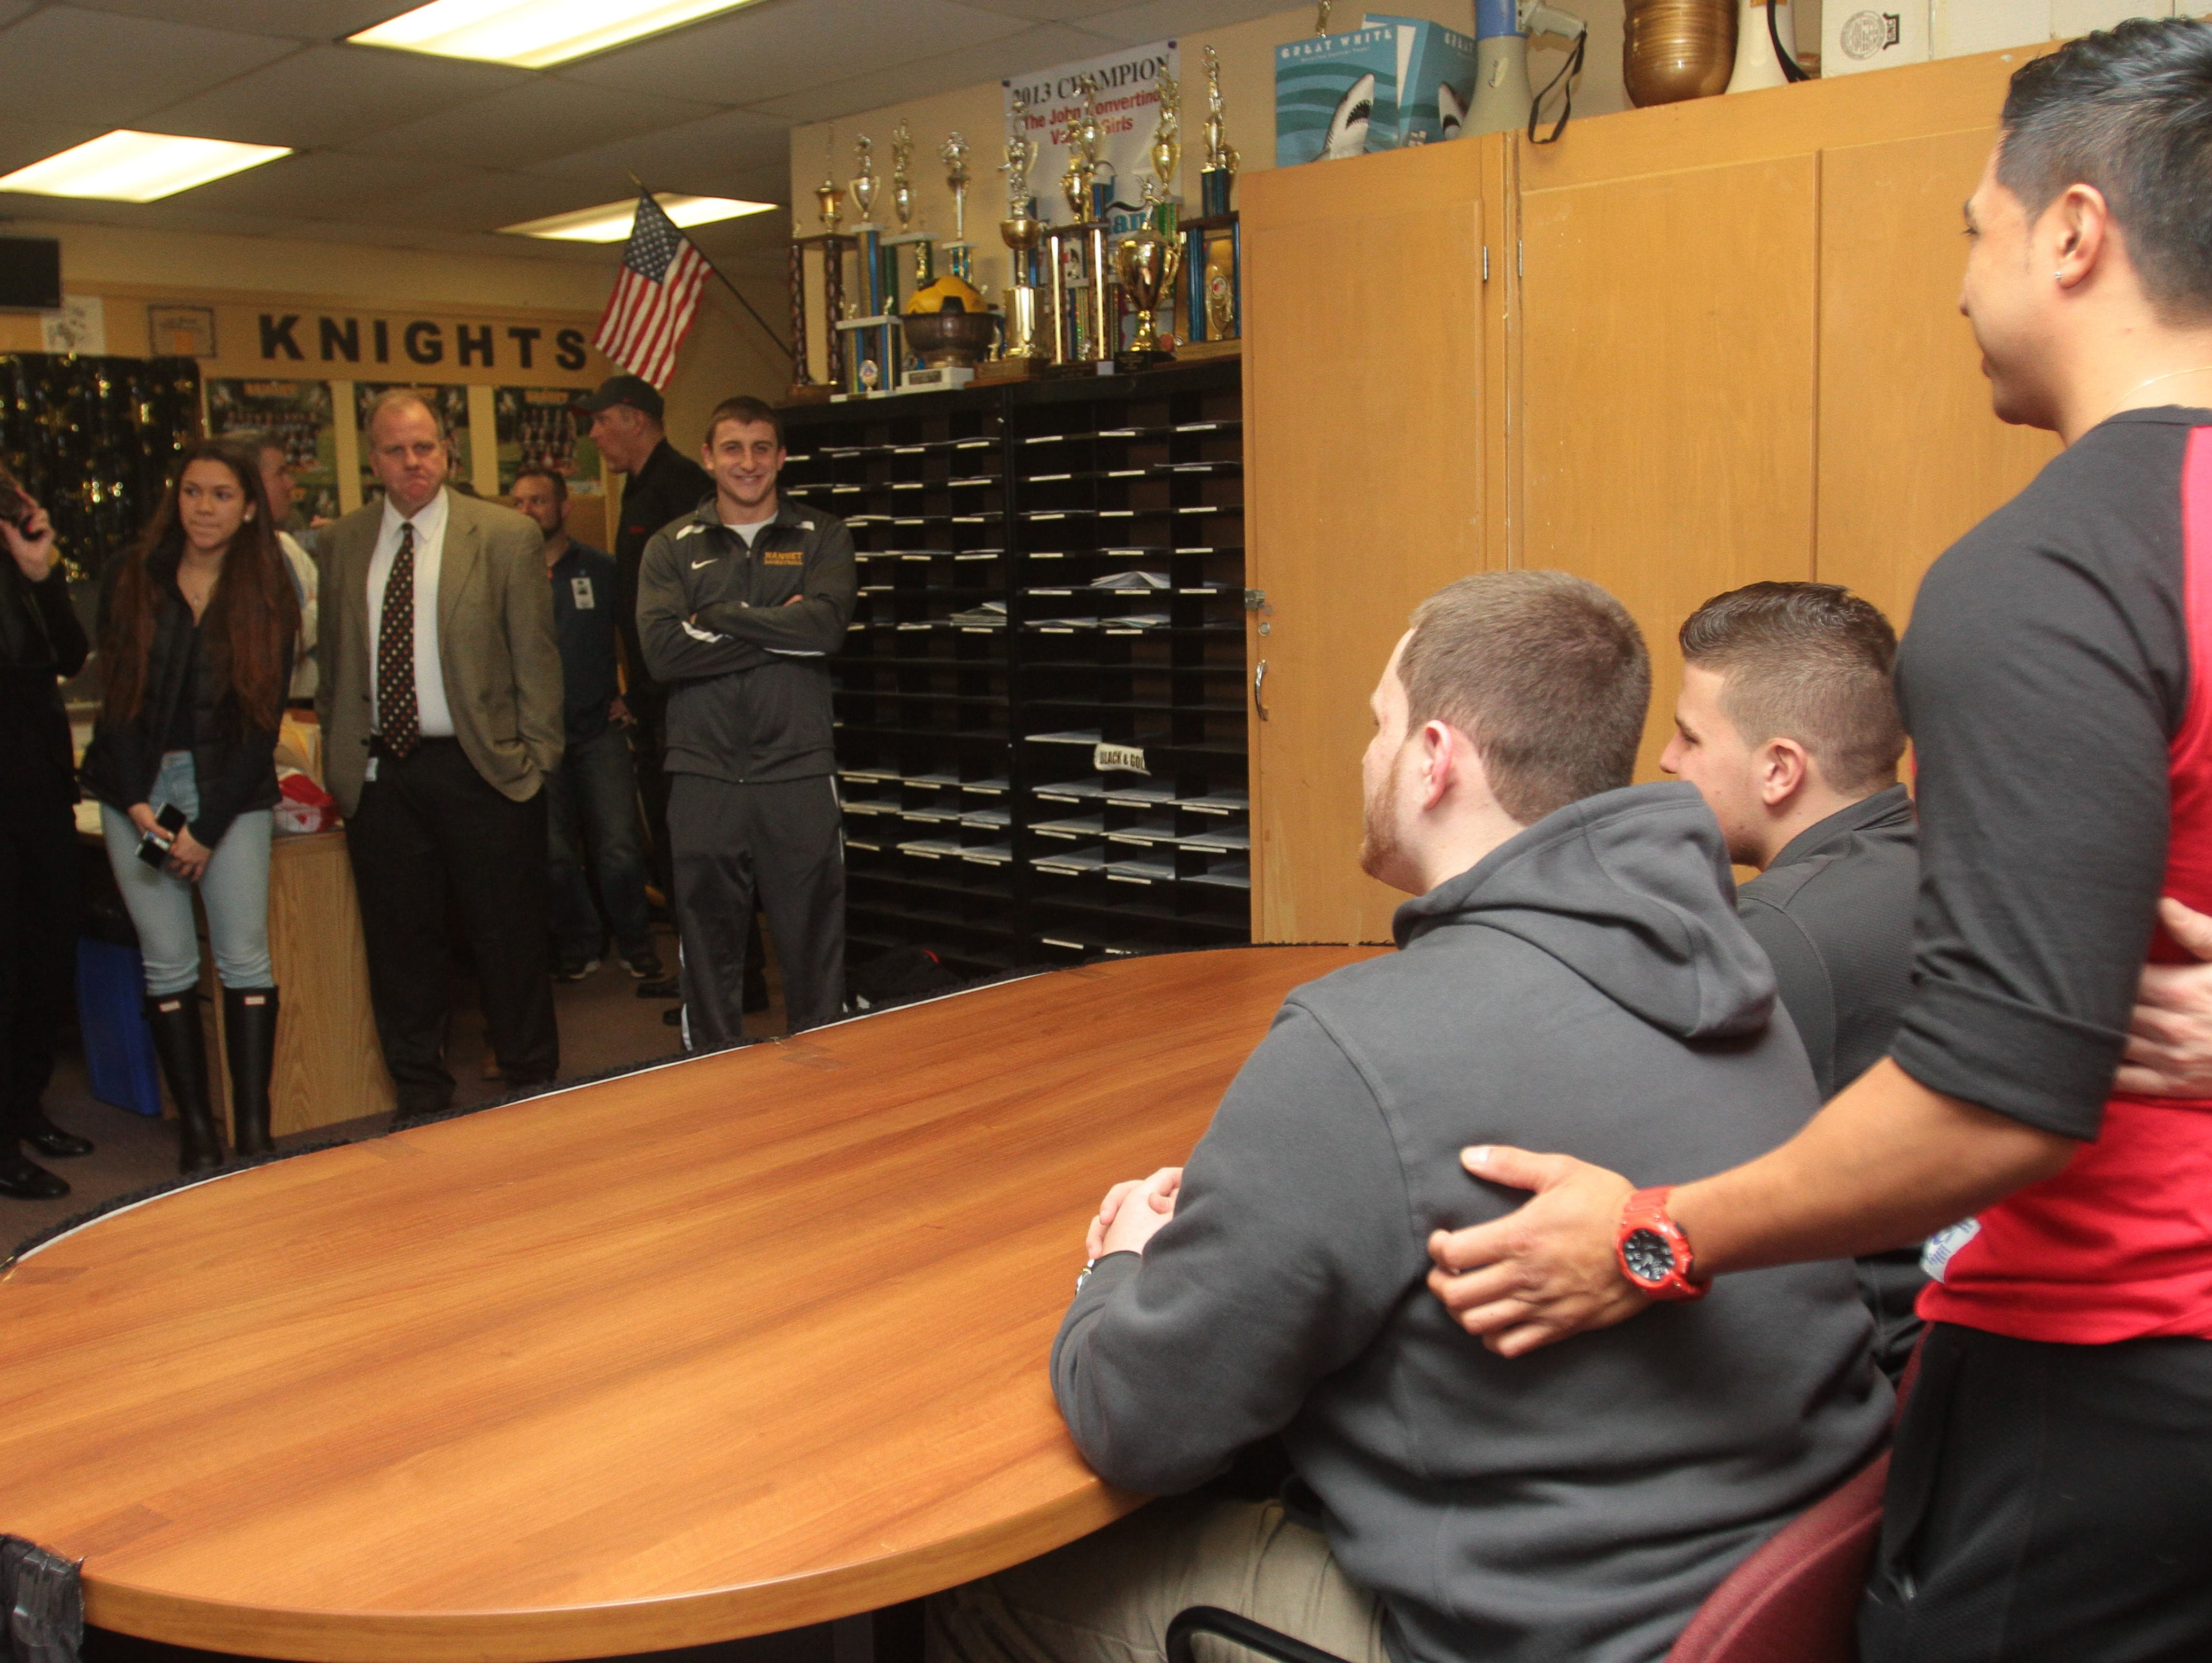 Friends, family and the coaching team took turns taking photos with Jordan Landsman and Brian Syracuse on Feb. 3, 2016 at Nanuet Senior High School.